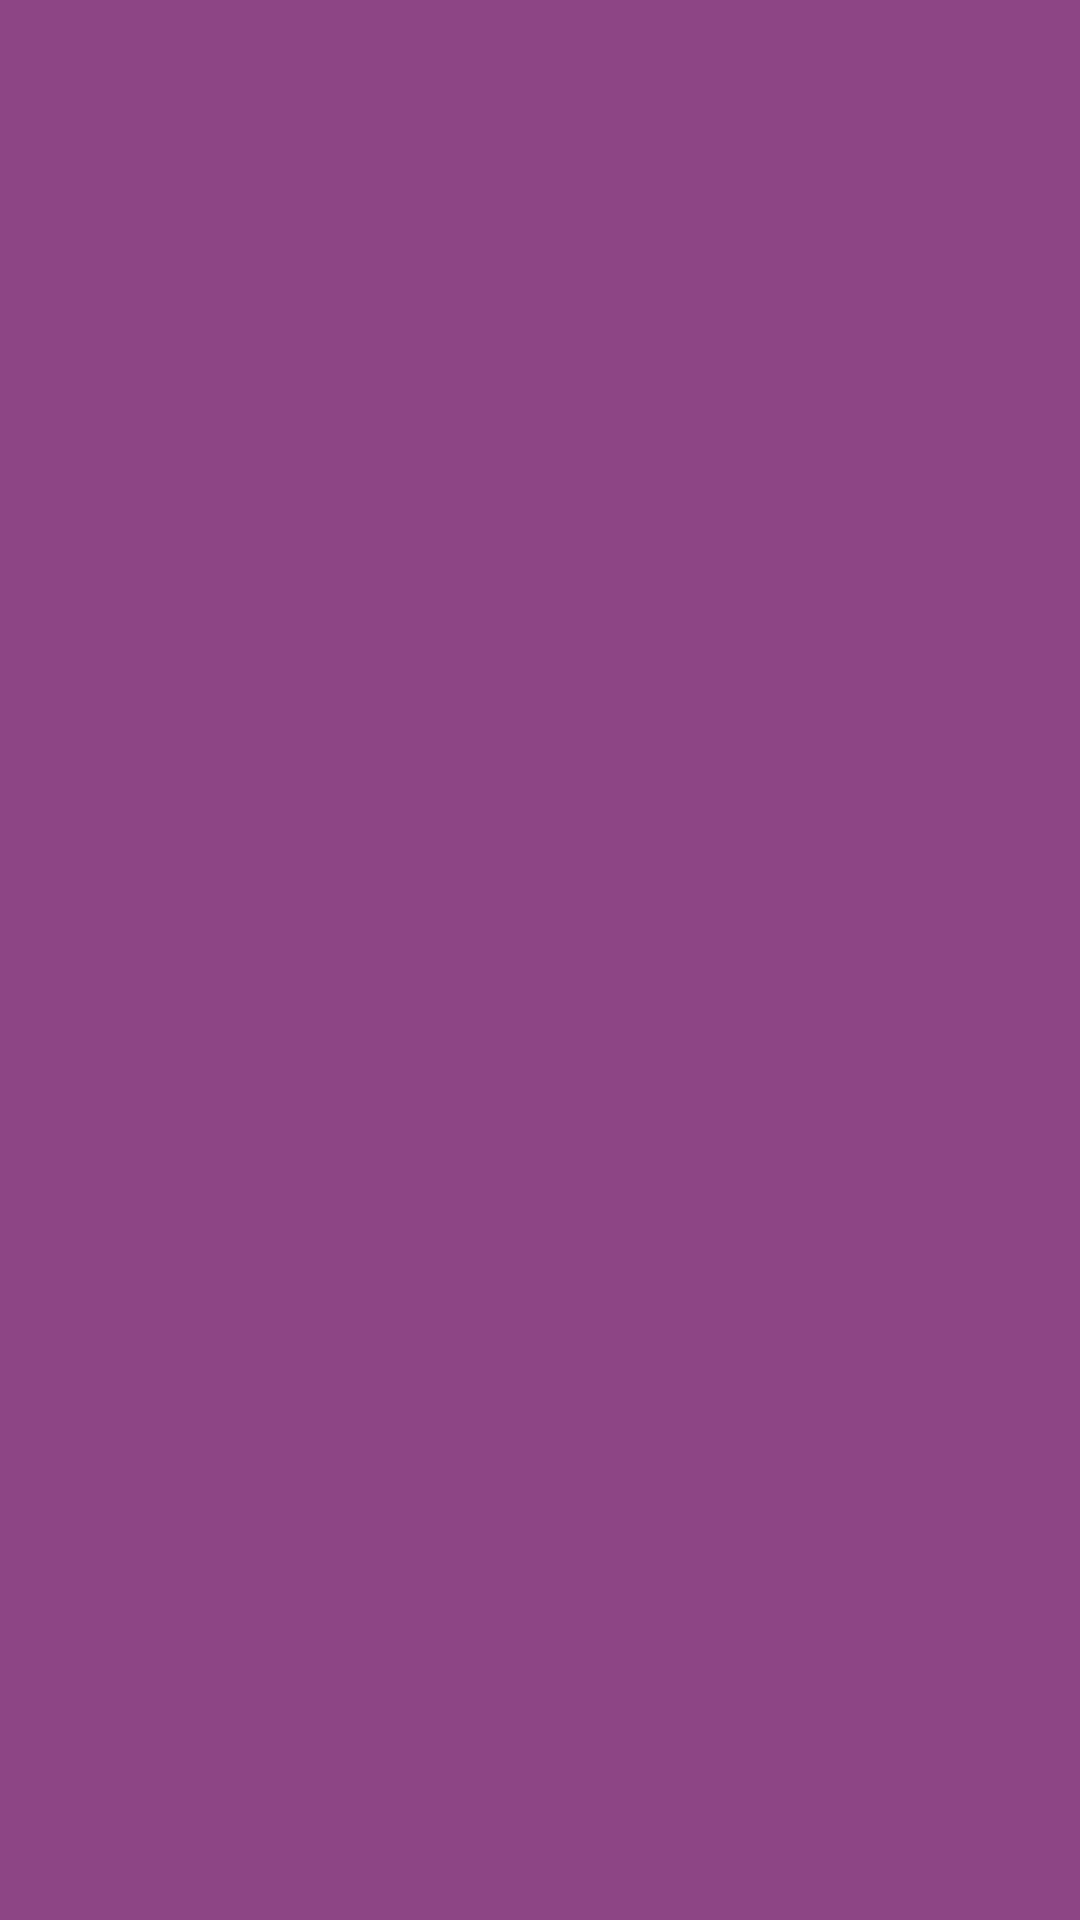 1080x1920 Plum Traditional Solid Color Background 1080x1920